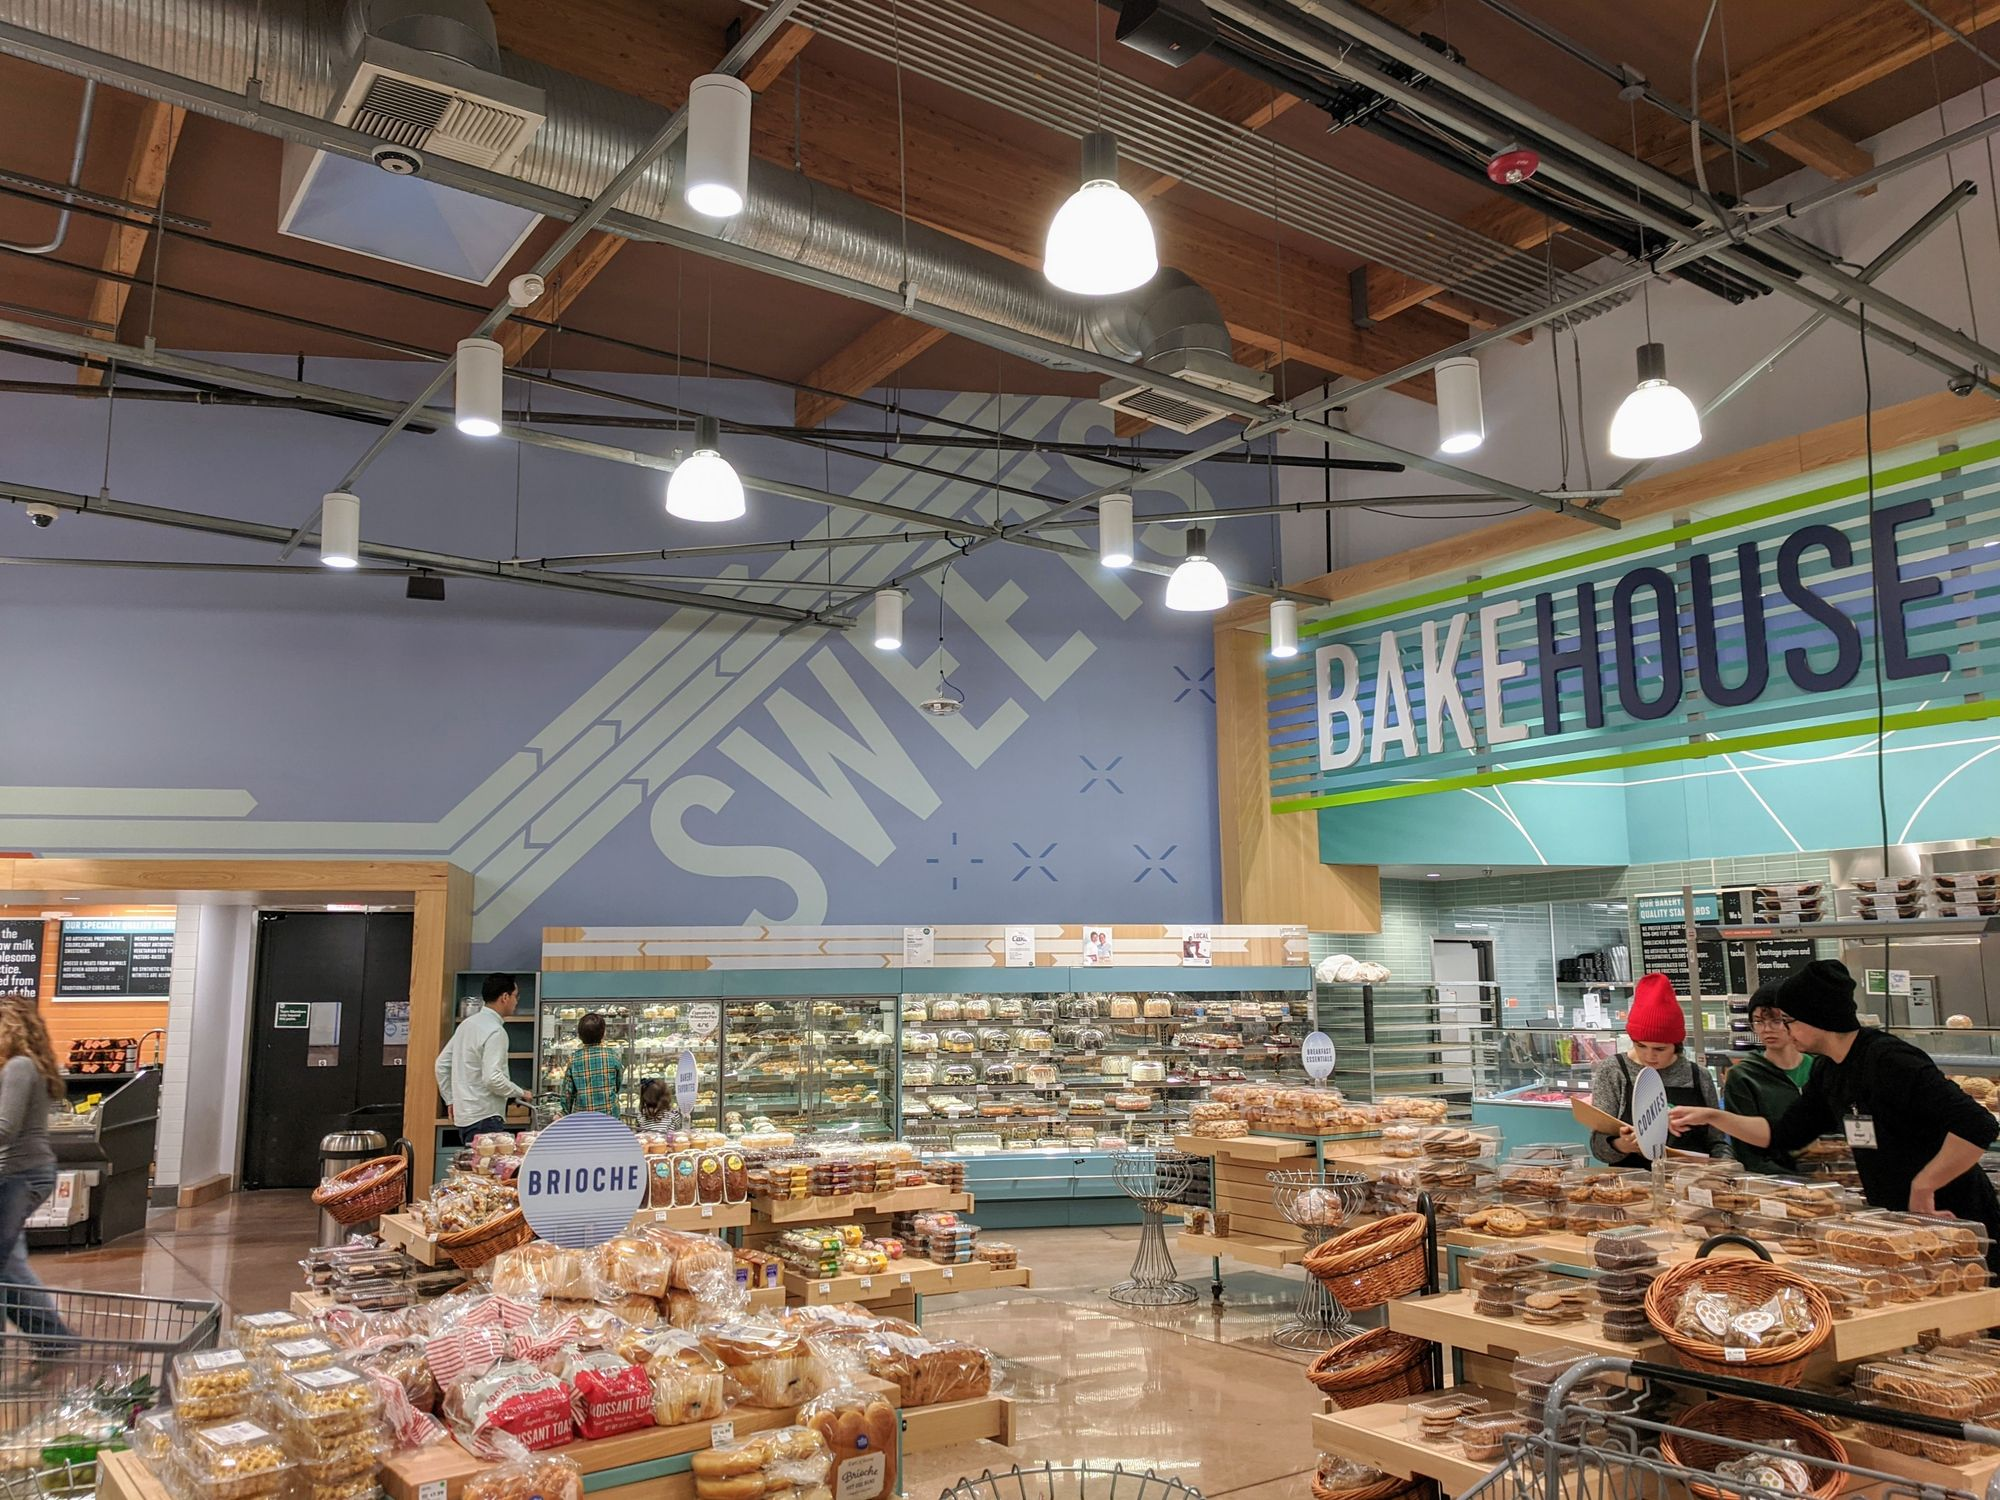 """The bakery section of Whole Foods. Big typography on the wall says """"SWEETS""""."""